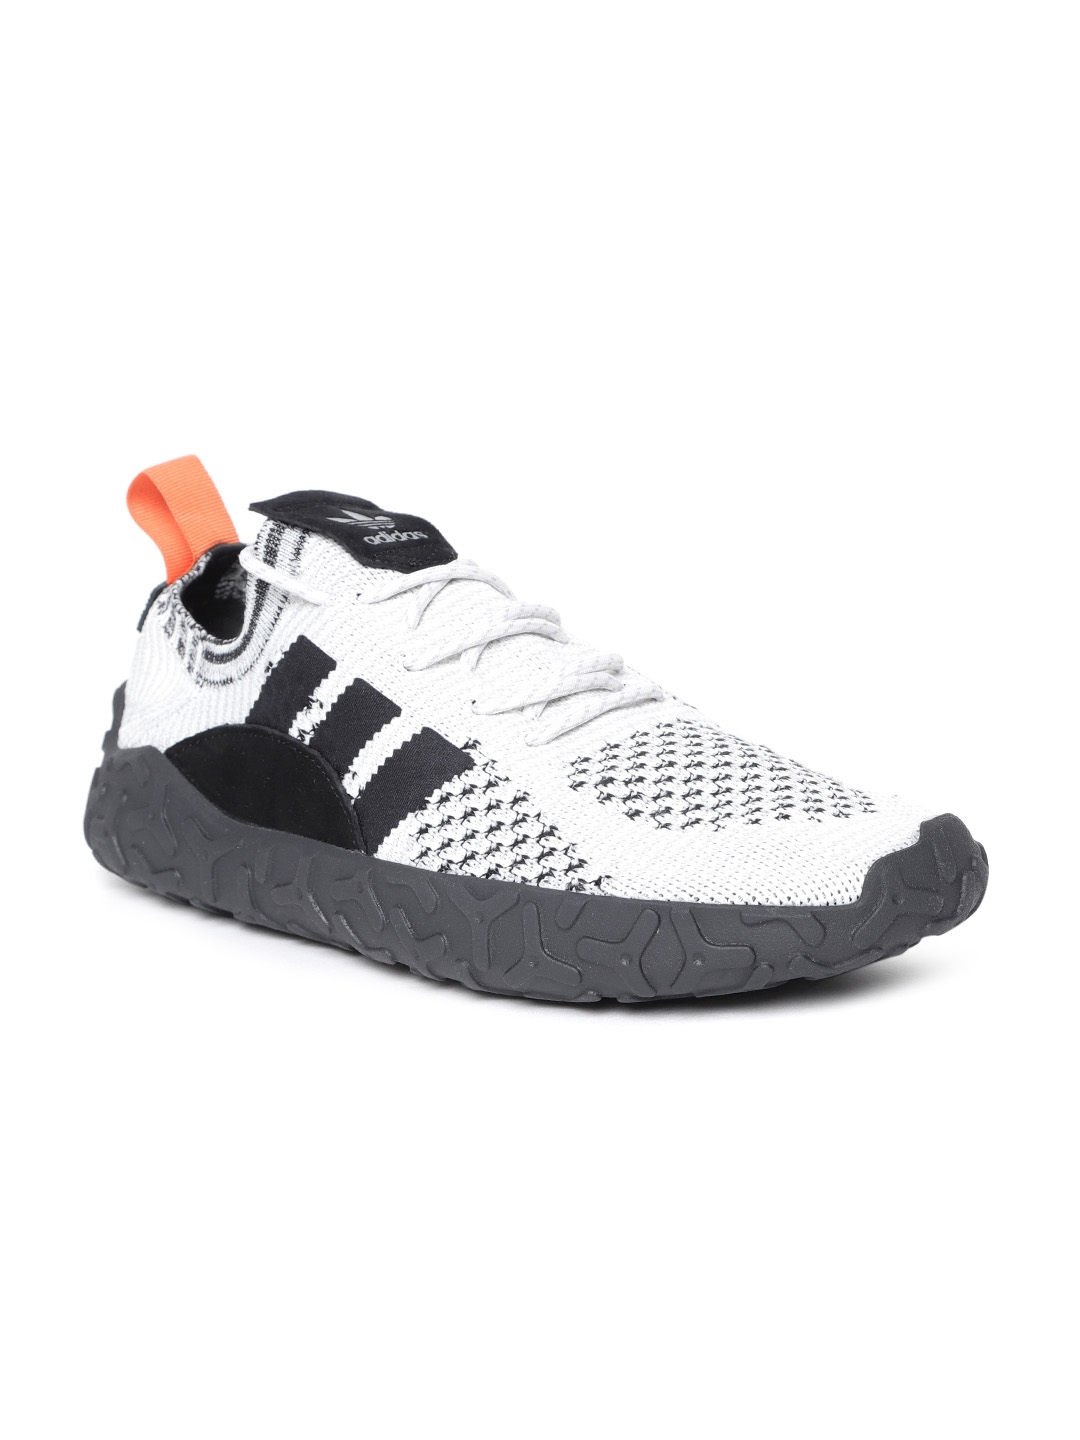 best service f8f09 cd24c ADIDAS Originals Men White  Black F22 PK Casual Shoes